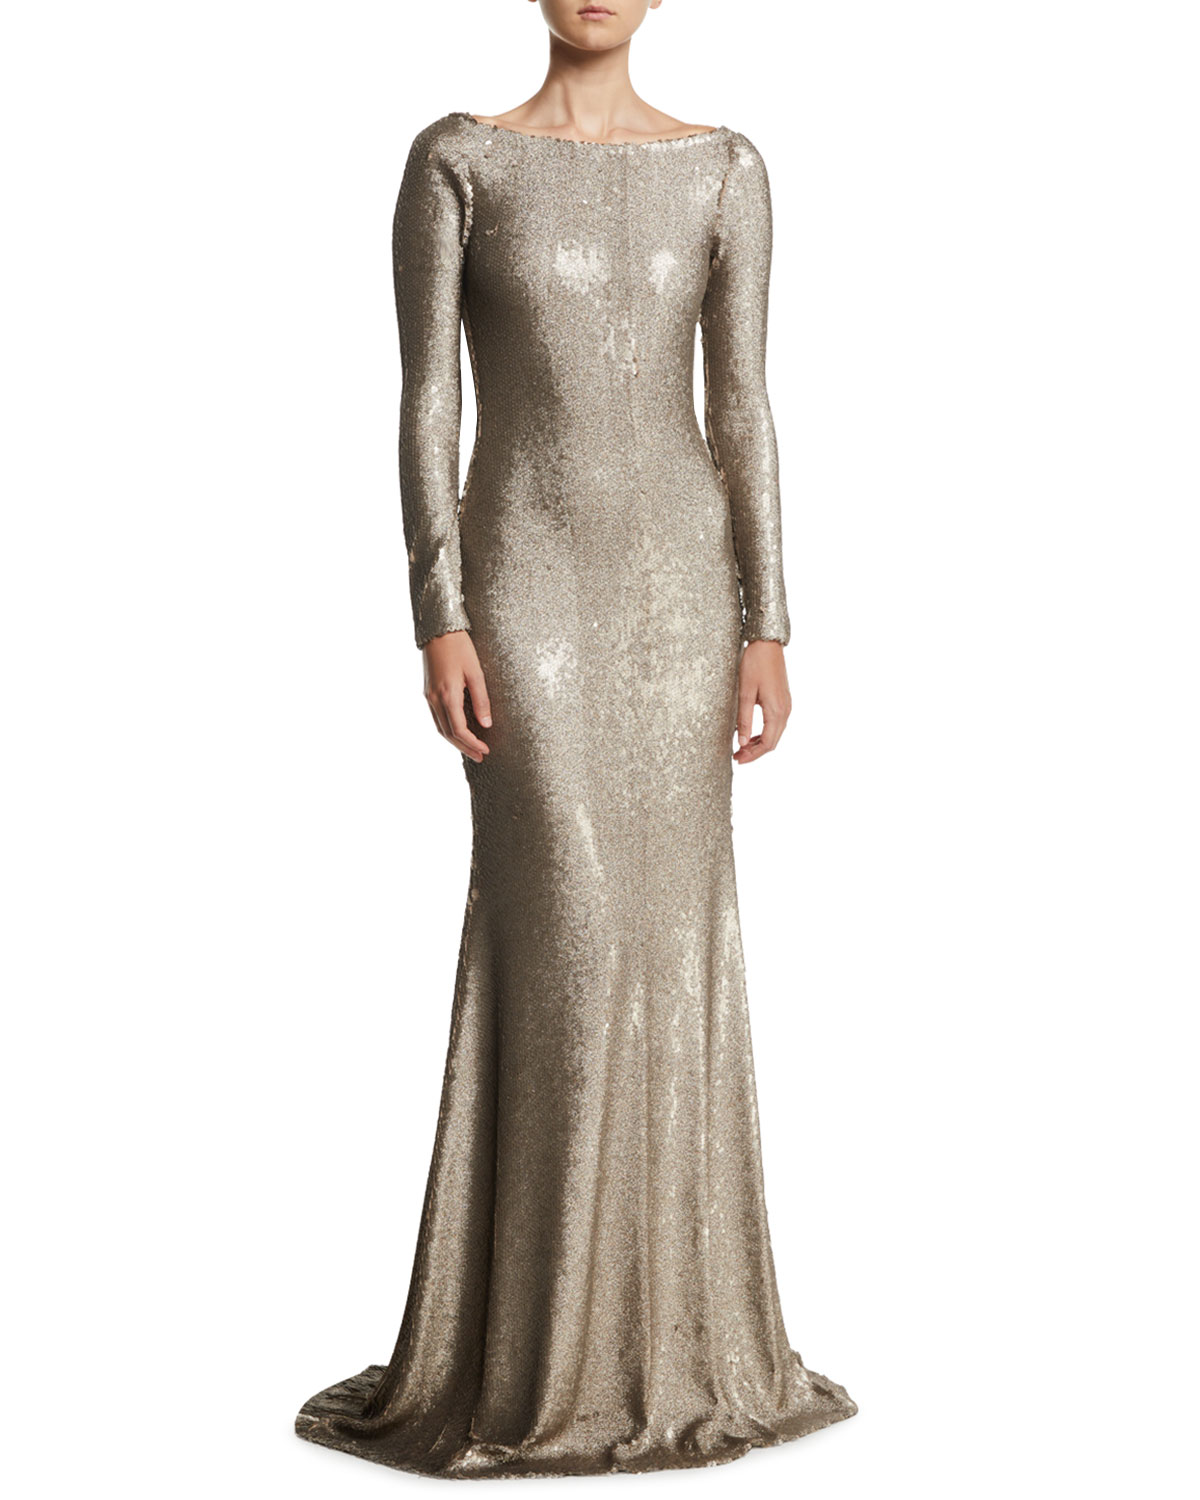 NAEEM KHAN Cowl-Back Boat-Neck Long-Sleeve Fitted Sequin Evening Gown in Gold